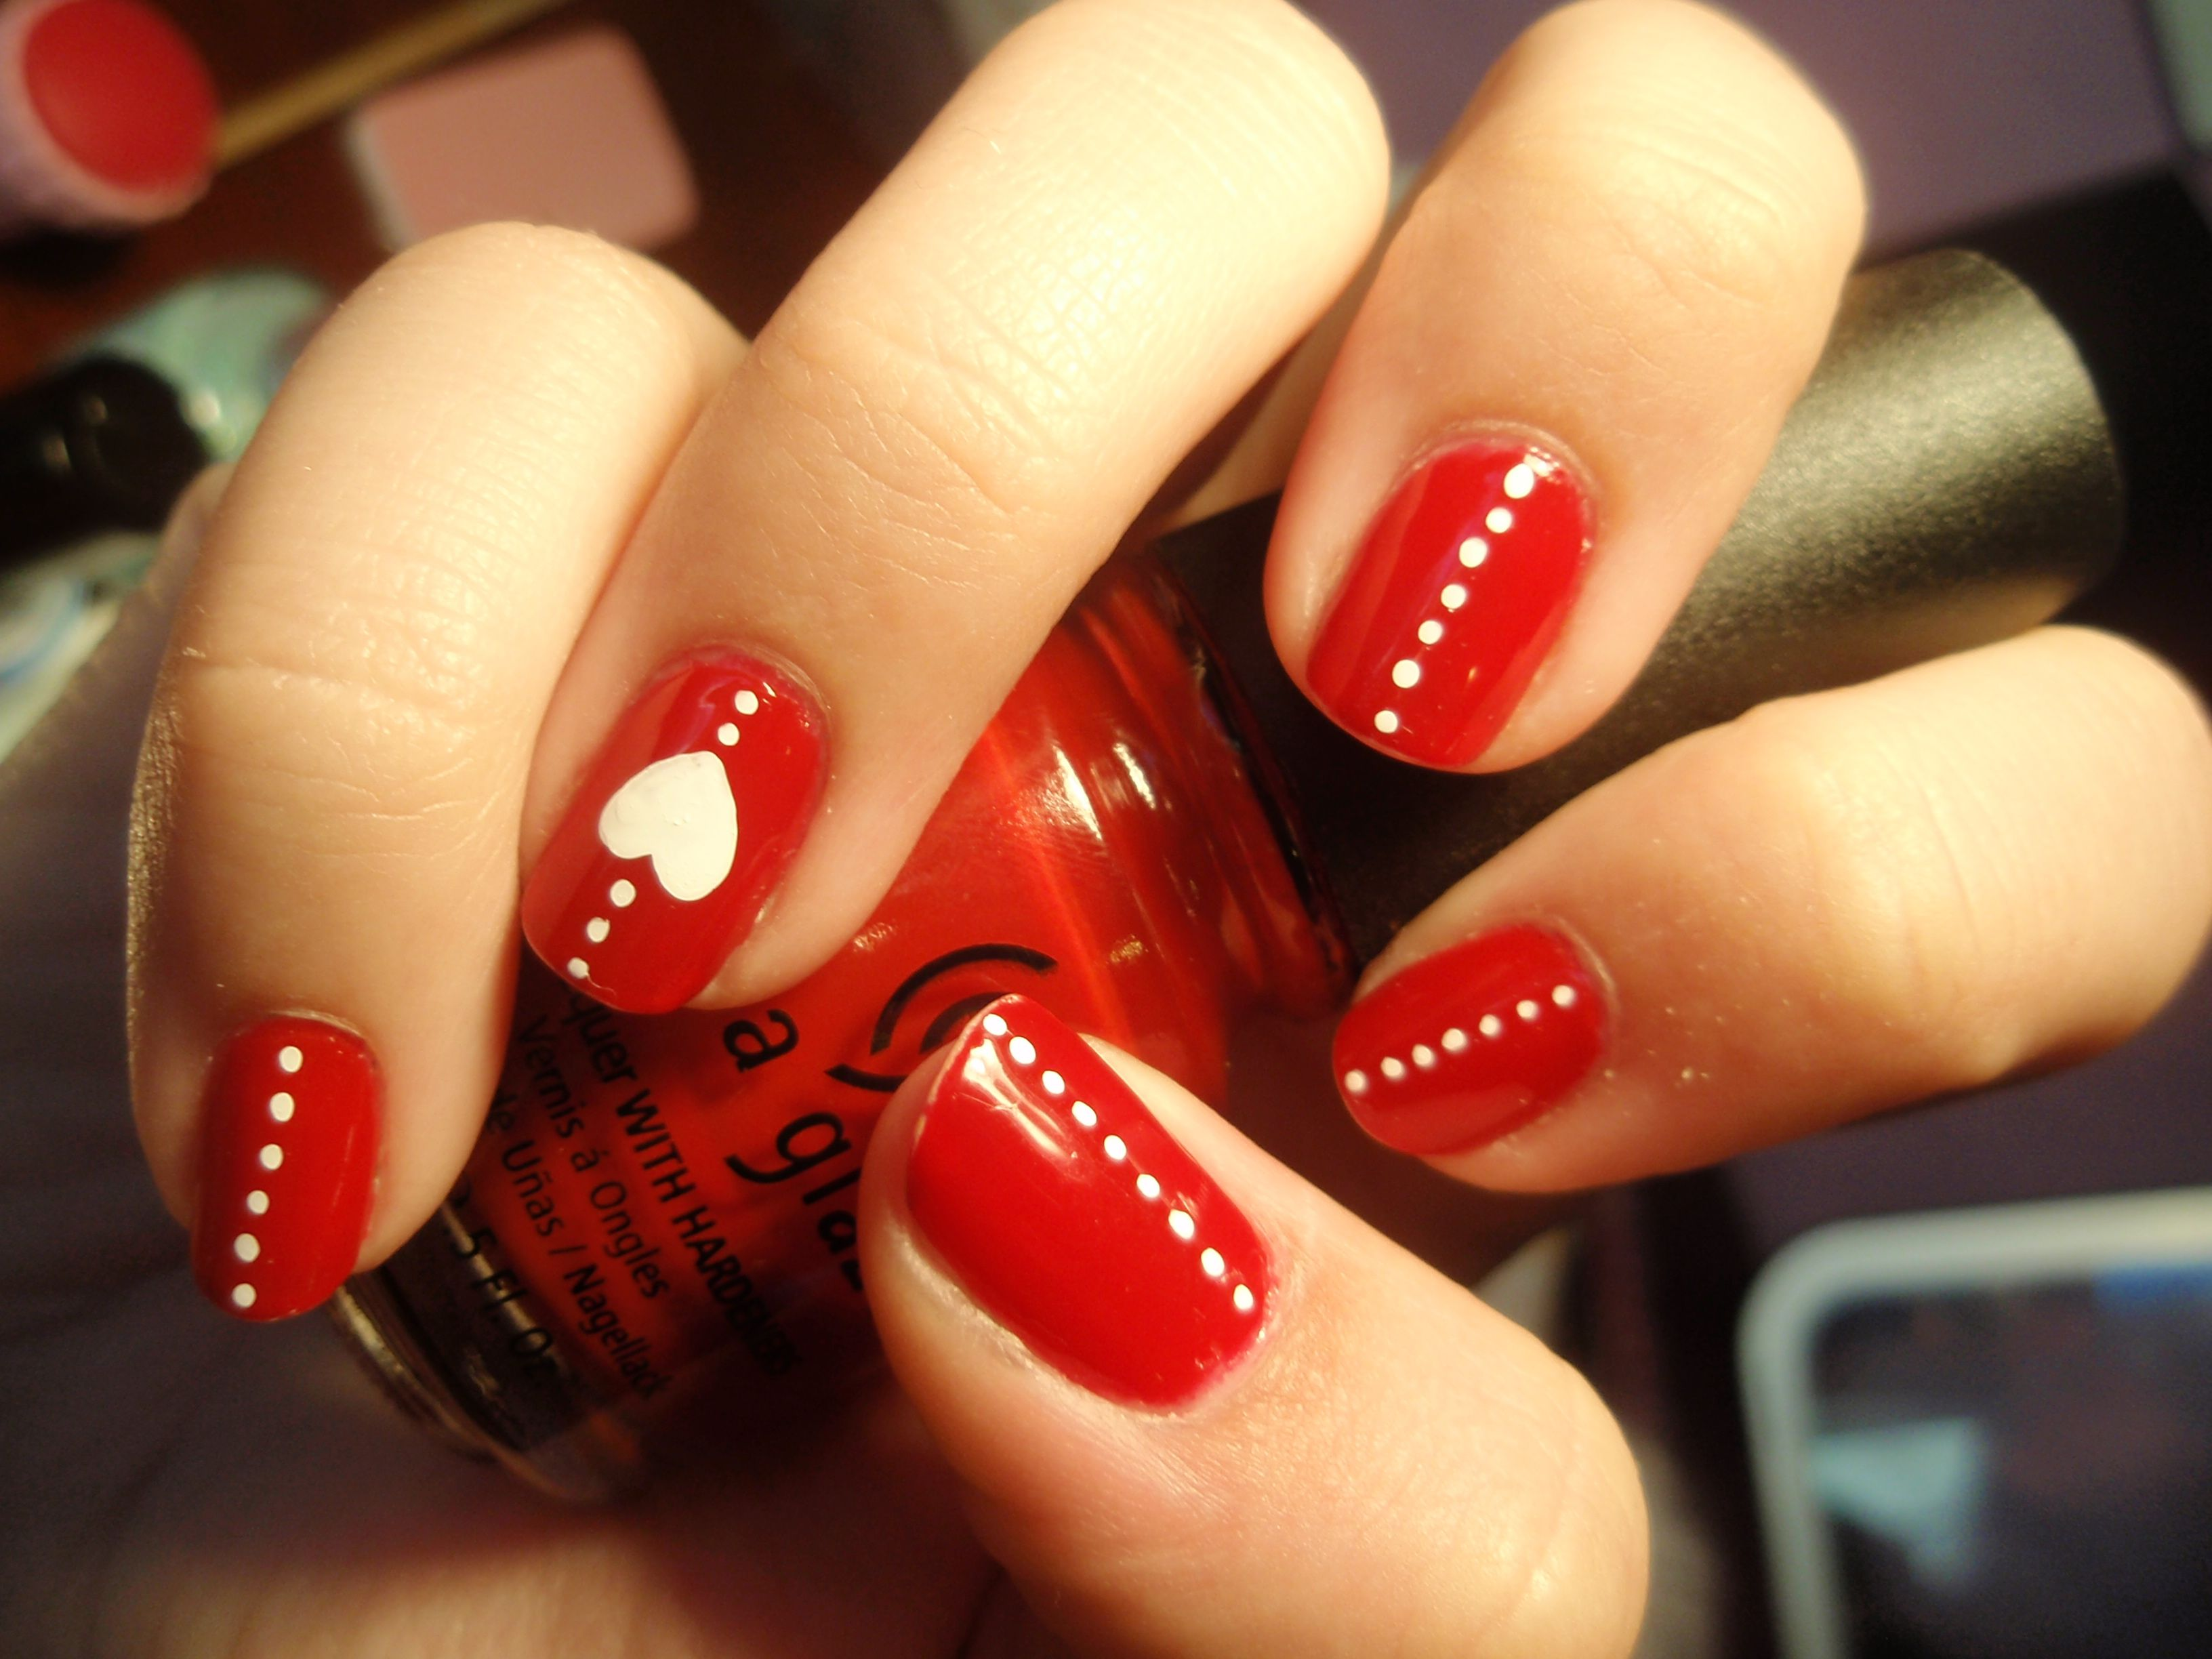 For example you may apply red and white polka dot designs on your for example you may apply red and white polka dot designs on your nails prinsesfo Choice Image